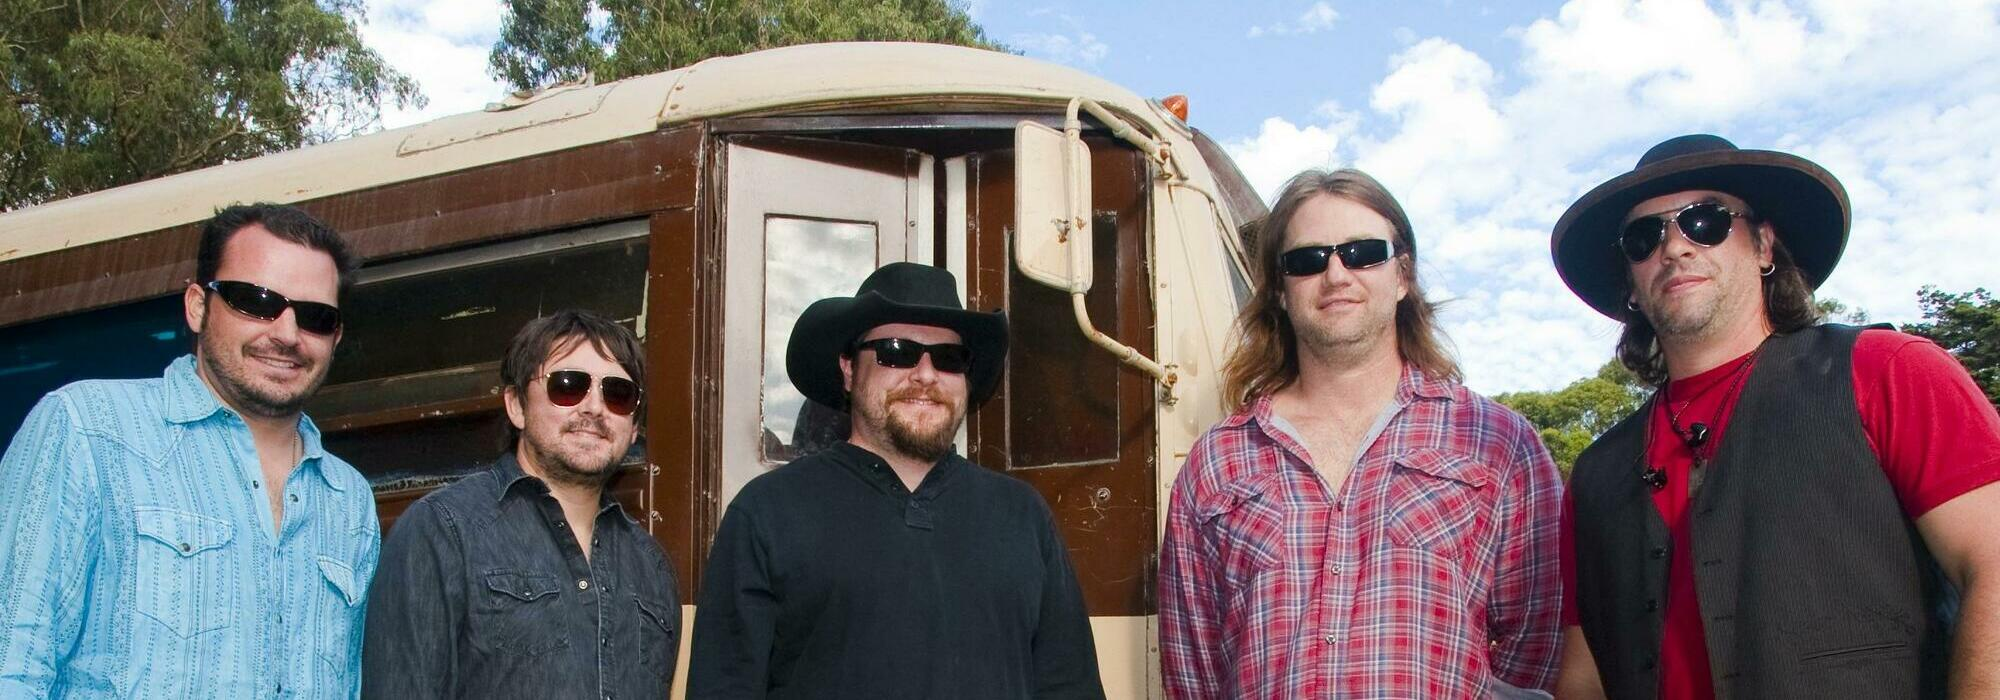 A Reckless Kelly live event